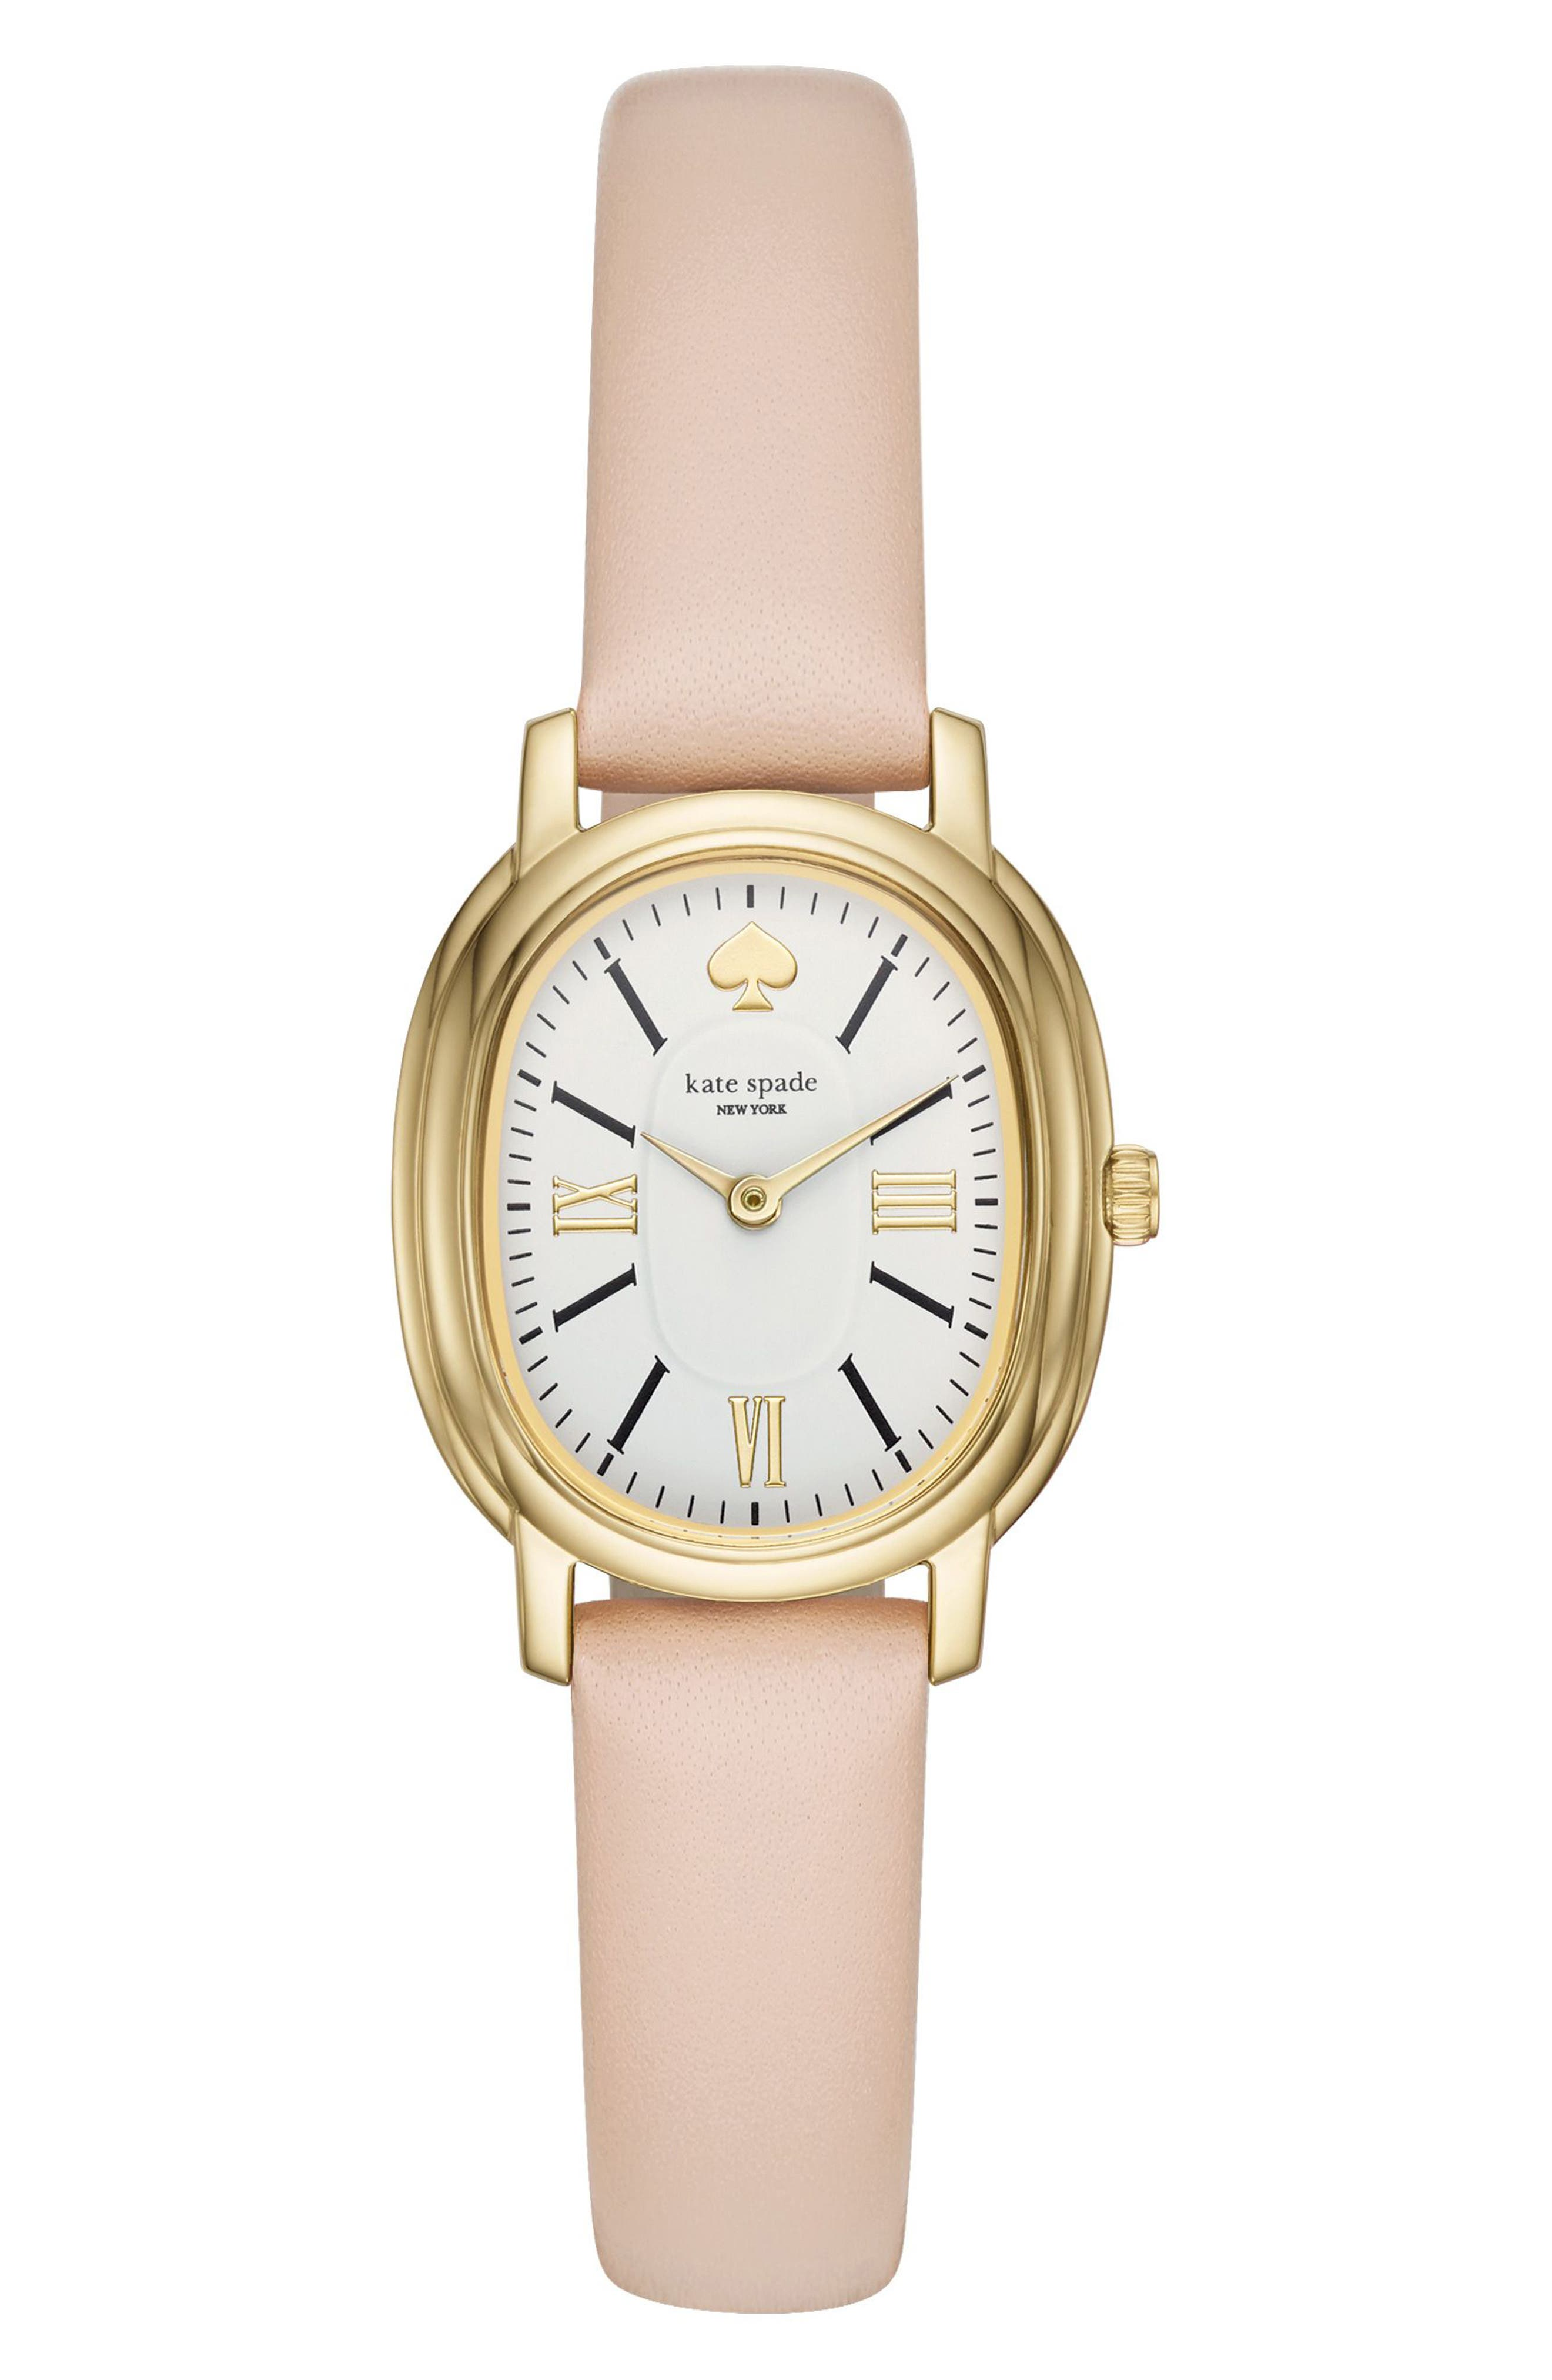 staten leather strap watch, 25mm,                         Main,                         color, NUDE/ WHITE/ GOLD